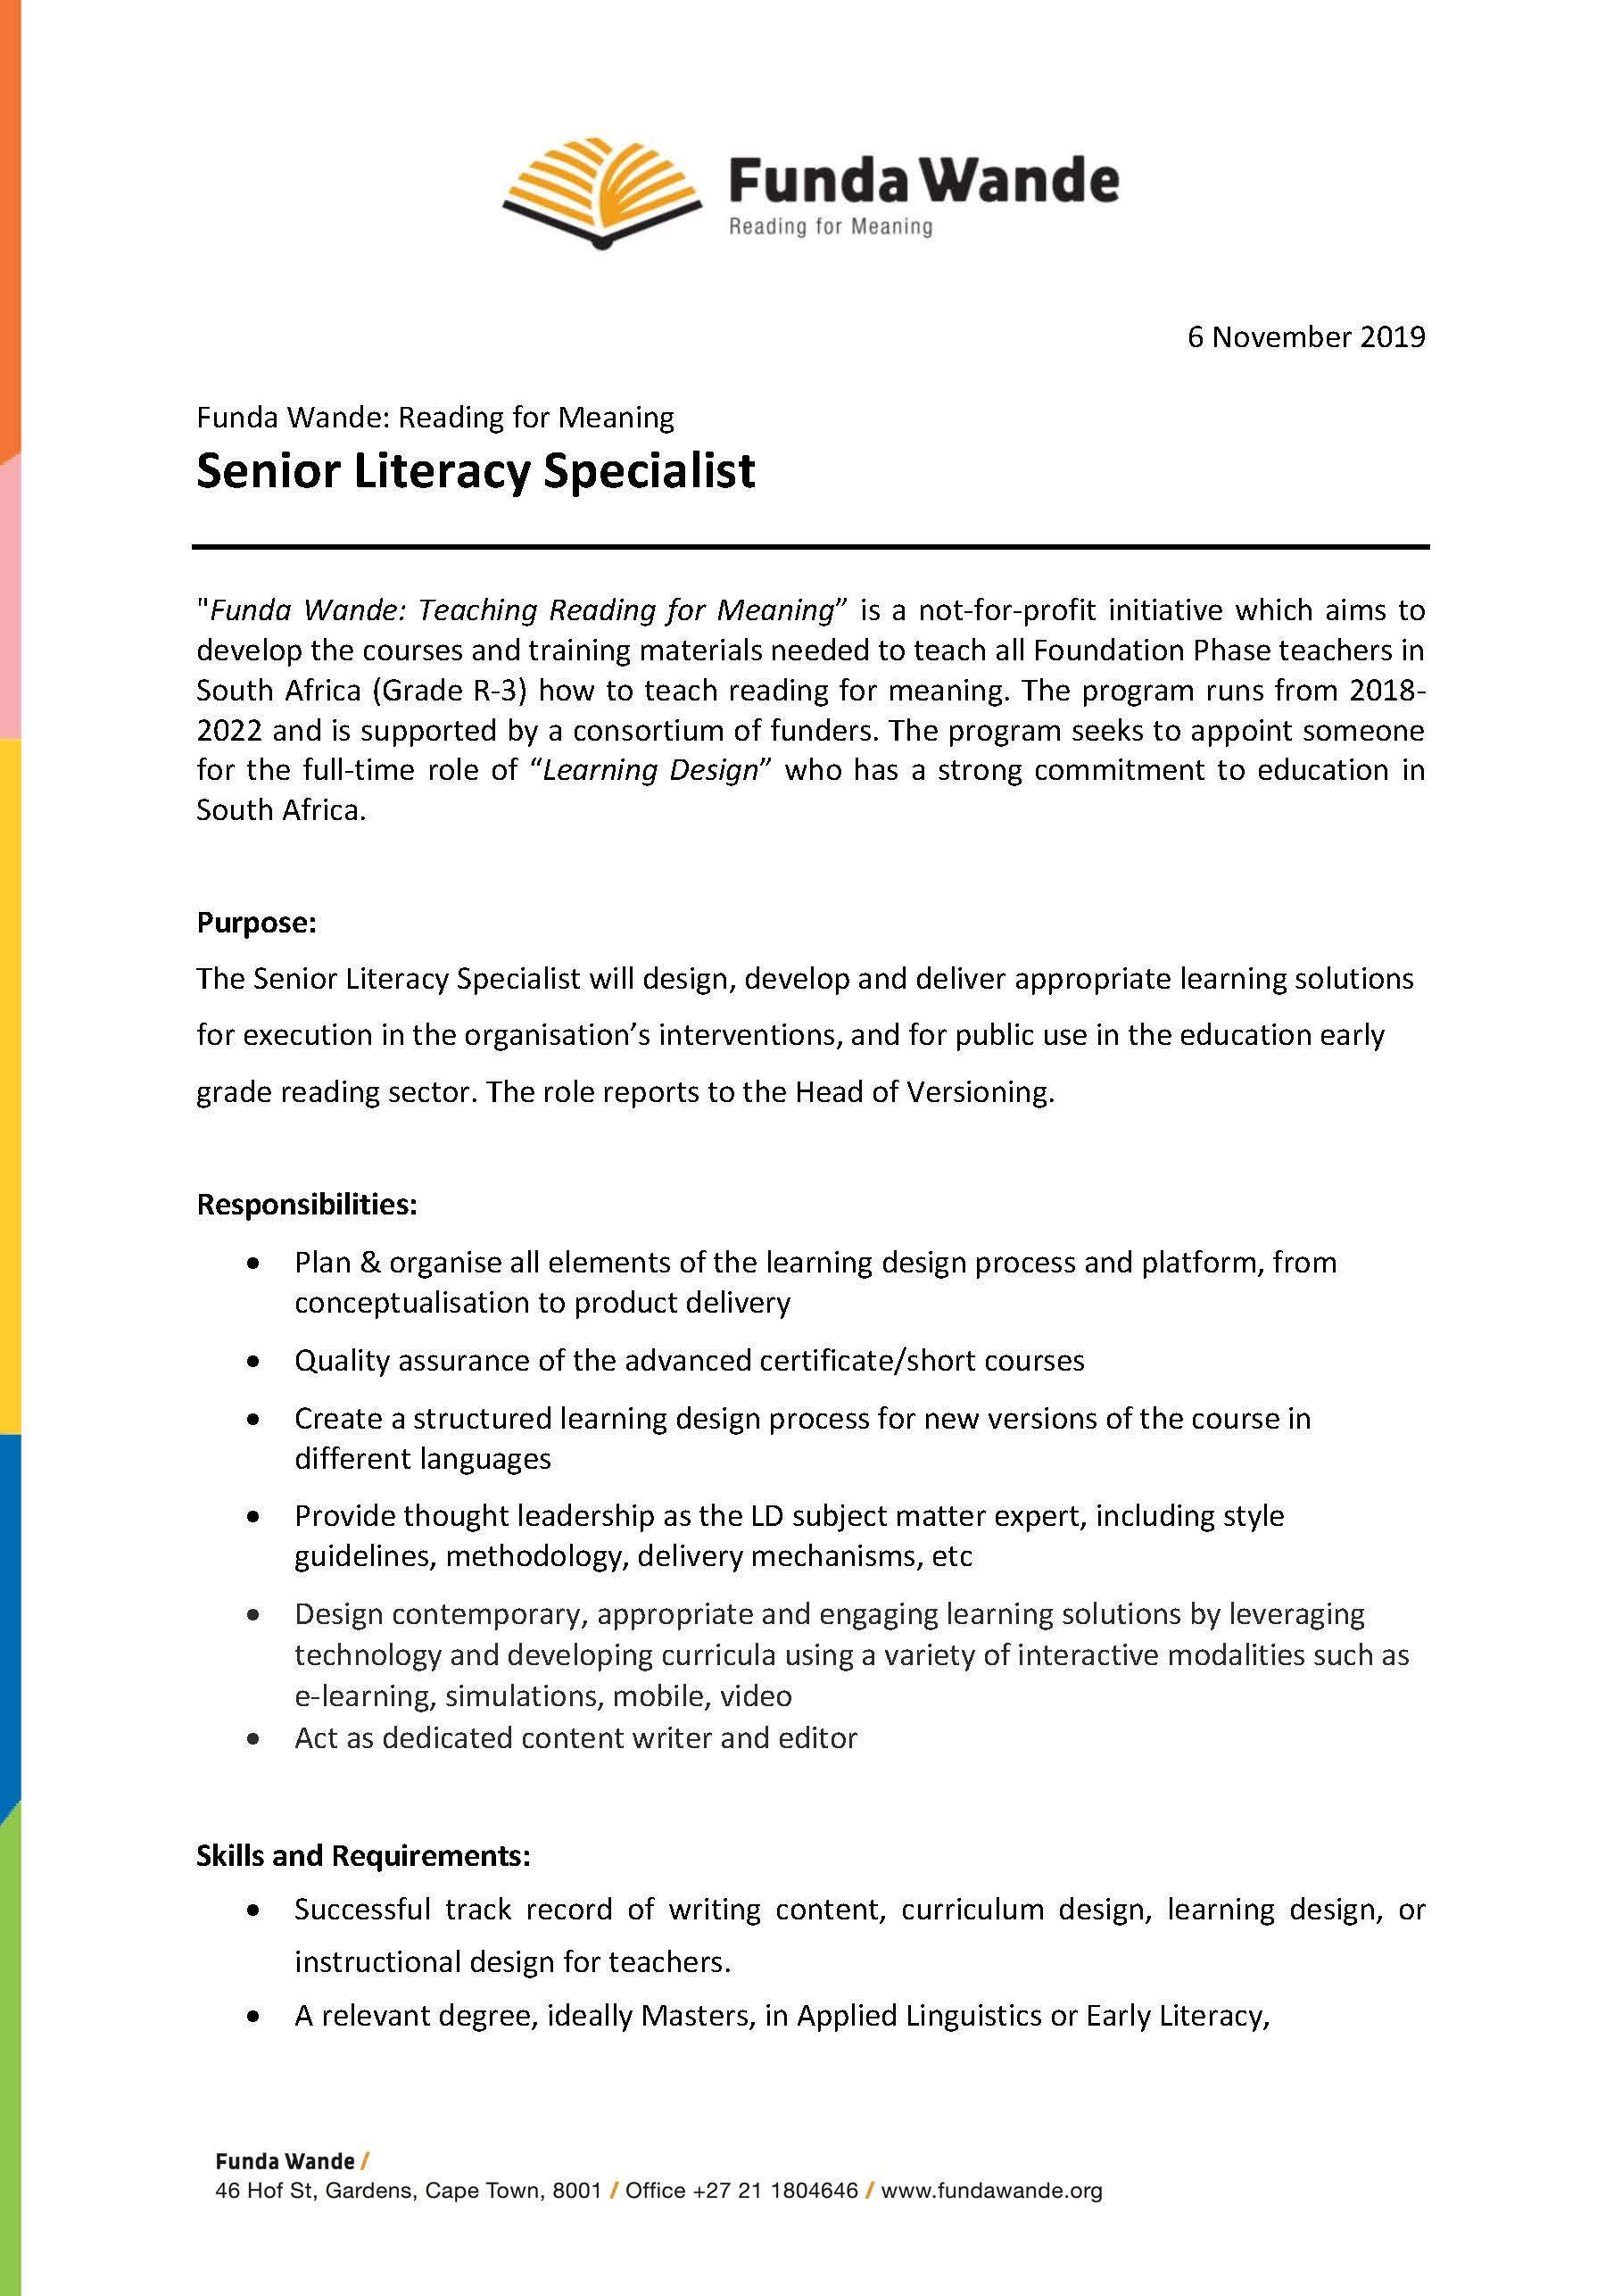 Pages from FW_Senior Literacy Specialist_Advert_061119